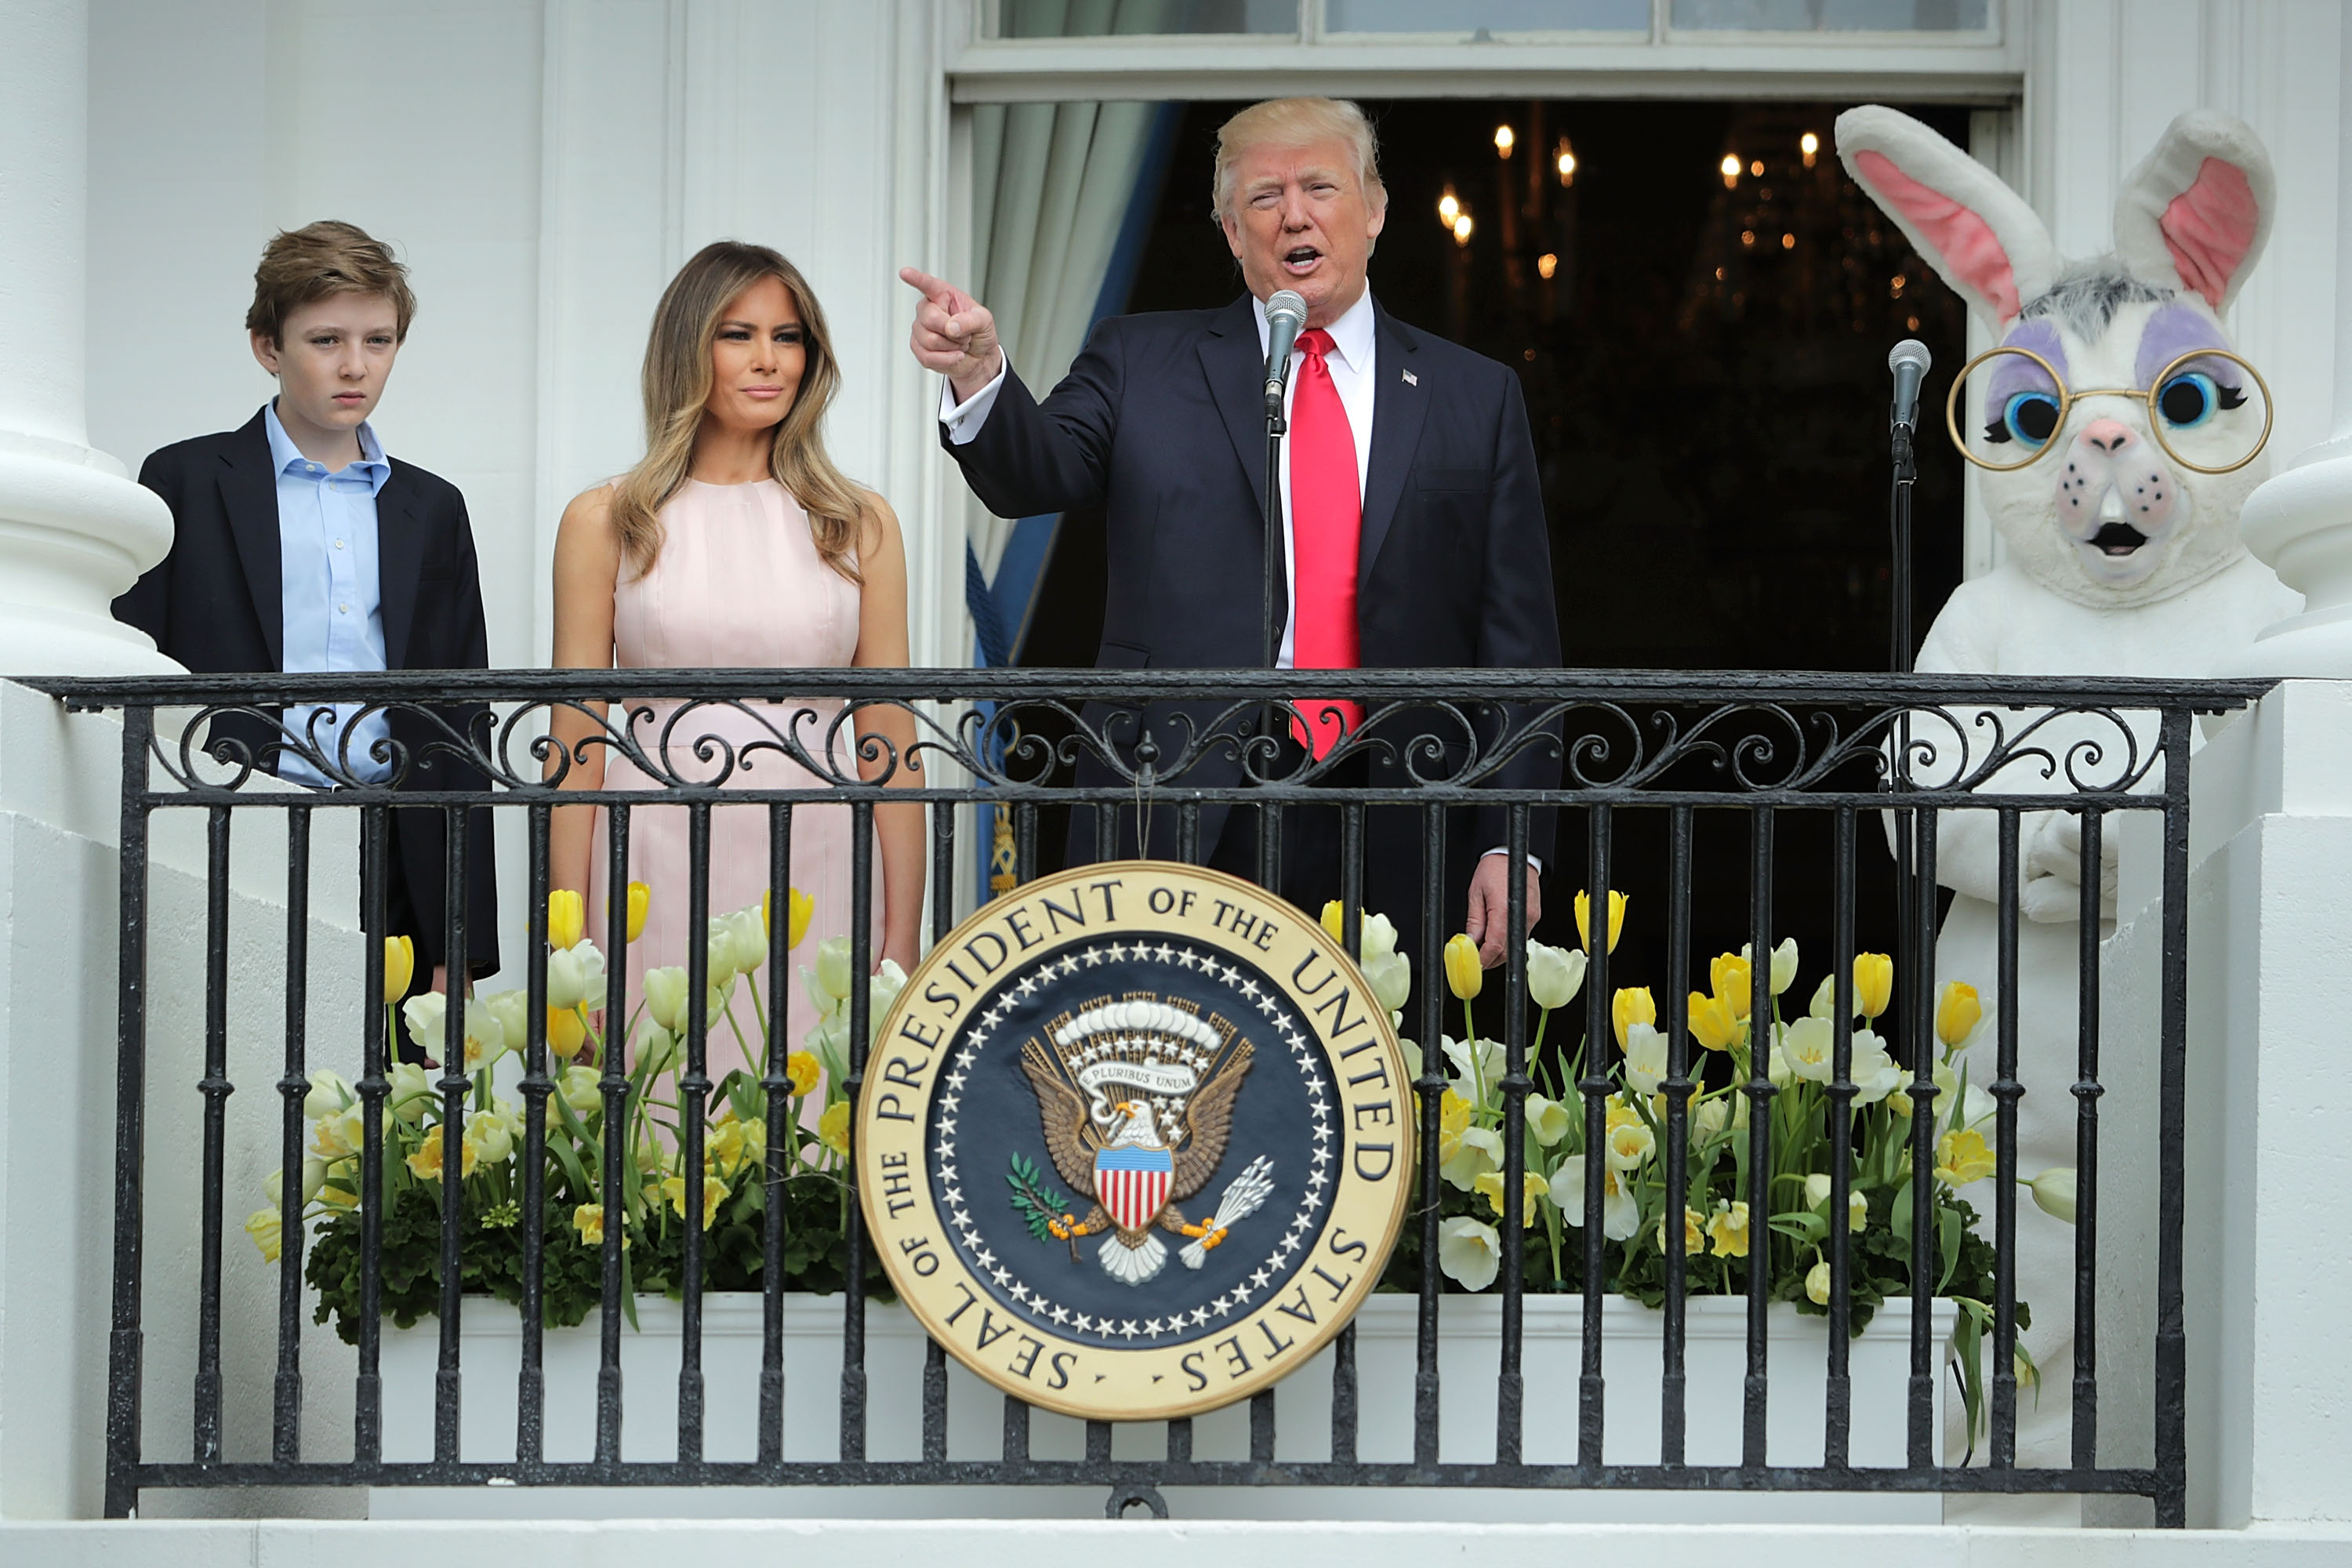 WASHINGTON, DC - APRIL 17:  U.S. President Donald Trump (C) delivers remarks from the Truman Balcony with first lady Melania Trump and their son Barron Trump (L) during the 139th Easter Egg Roll on the South Lawn of the White House April 17, 2017 in Washington, DC. The White House said 21,000 people are expected to attend the annual tradition of rolling colored eggs down the White House lawn that was started by President Rutherford B. Hayes in 1878.  (Photo by Chip Somodevilla/Getty Images)